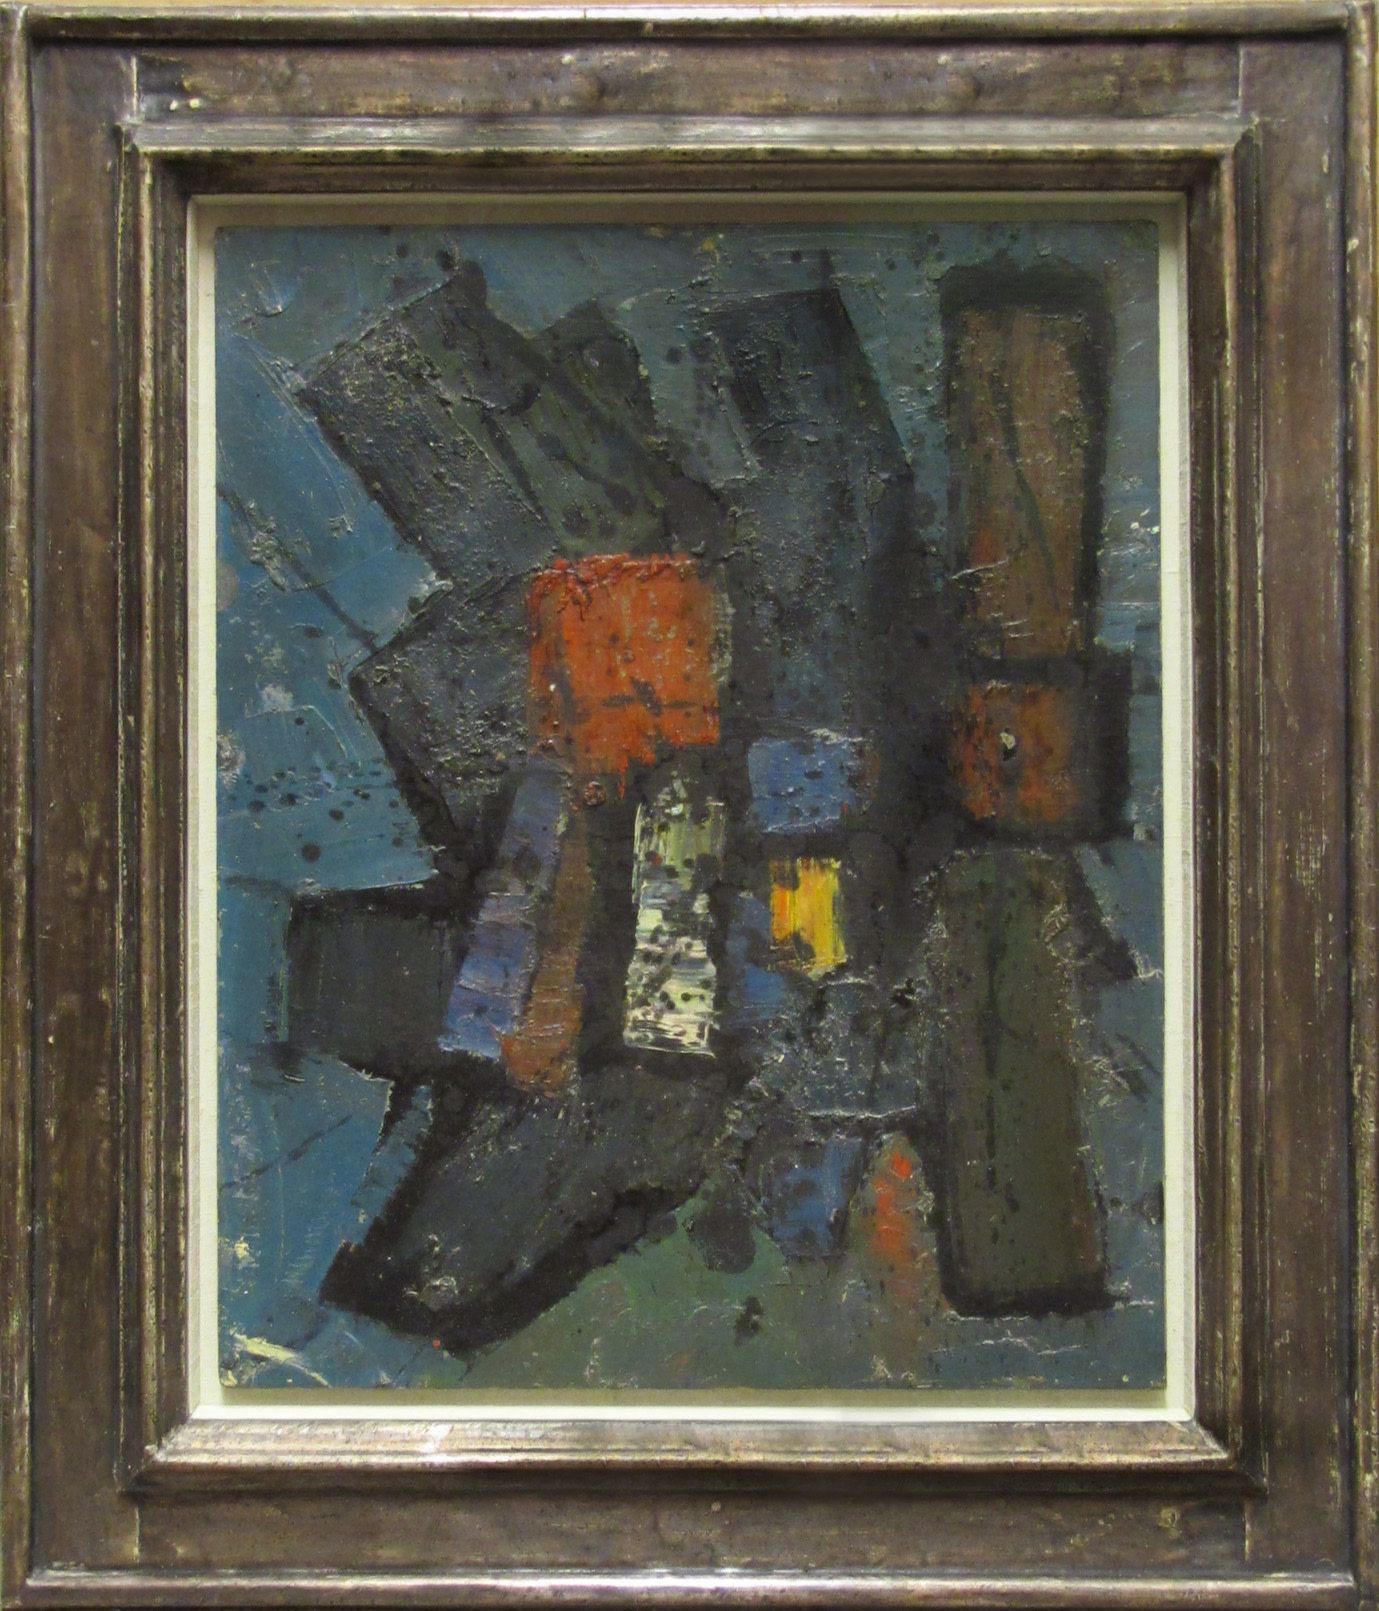 <span class=&#34;link fancybox-details-link&#34;><a href=&#34;/artists/66-frank-avray-wilson/works/14/&#34;>View Detail Page</a></span><div class=&#34;artist&#34;><strong>Frank Avray Wilson</strong></div> 1914-2009 <div class=&#34;title&#34;><em>Yellow Centre</em></div> <div class=&#34;signed_and_dated&#34;>signed verso</div> <div class=&#34;medium&#34;>oil on board painted circa 1959</div> <div class=&#34;dimensions&#34;>40.5 x 33 cms (16 x 13 ins)<br /> framed: 22 x 19 ins (56 x 48 cms)</div>